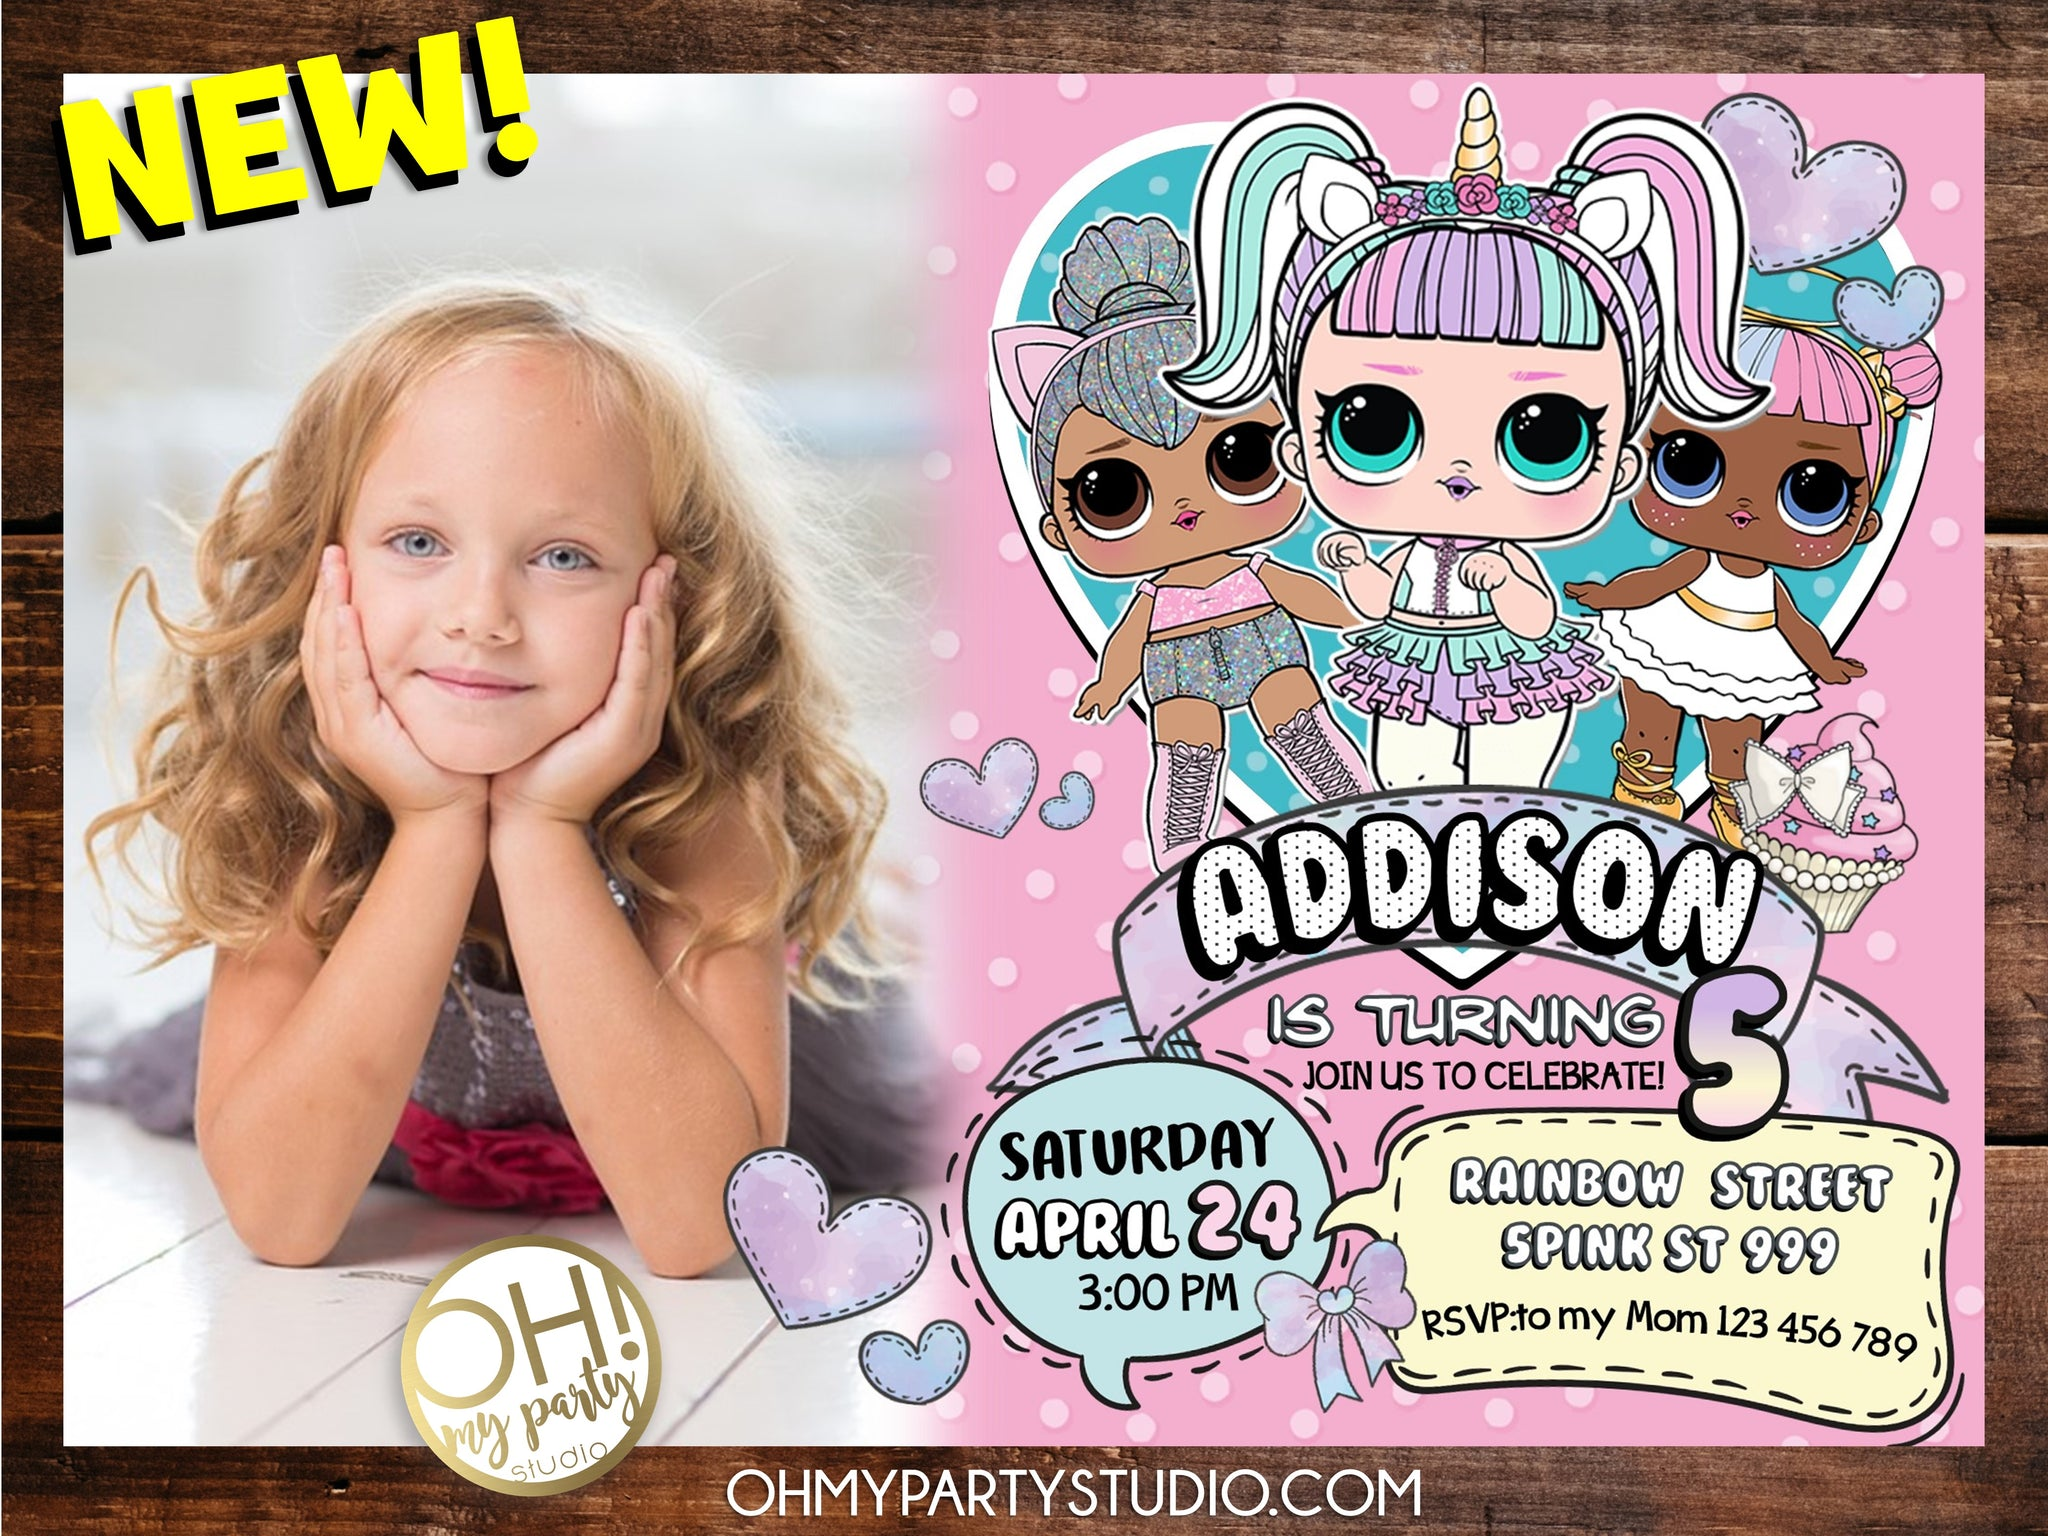 LOL DOLLS BIRTHDAY PARTY INVITATION, LOL DOLLS INVITATION, LOL DOLLS BIRTHDAY, LOL DOLLS INVITATIONS, LOL DOLLS POOL PARTY, LOL DOLLS POOL PARTY, LOL SURPRISE POOL PARTY INVITATION, LOL SURPRISE INVITE, LOL SURPRISE POOL PARTY INVITE